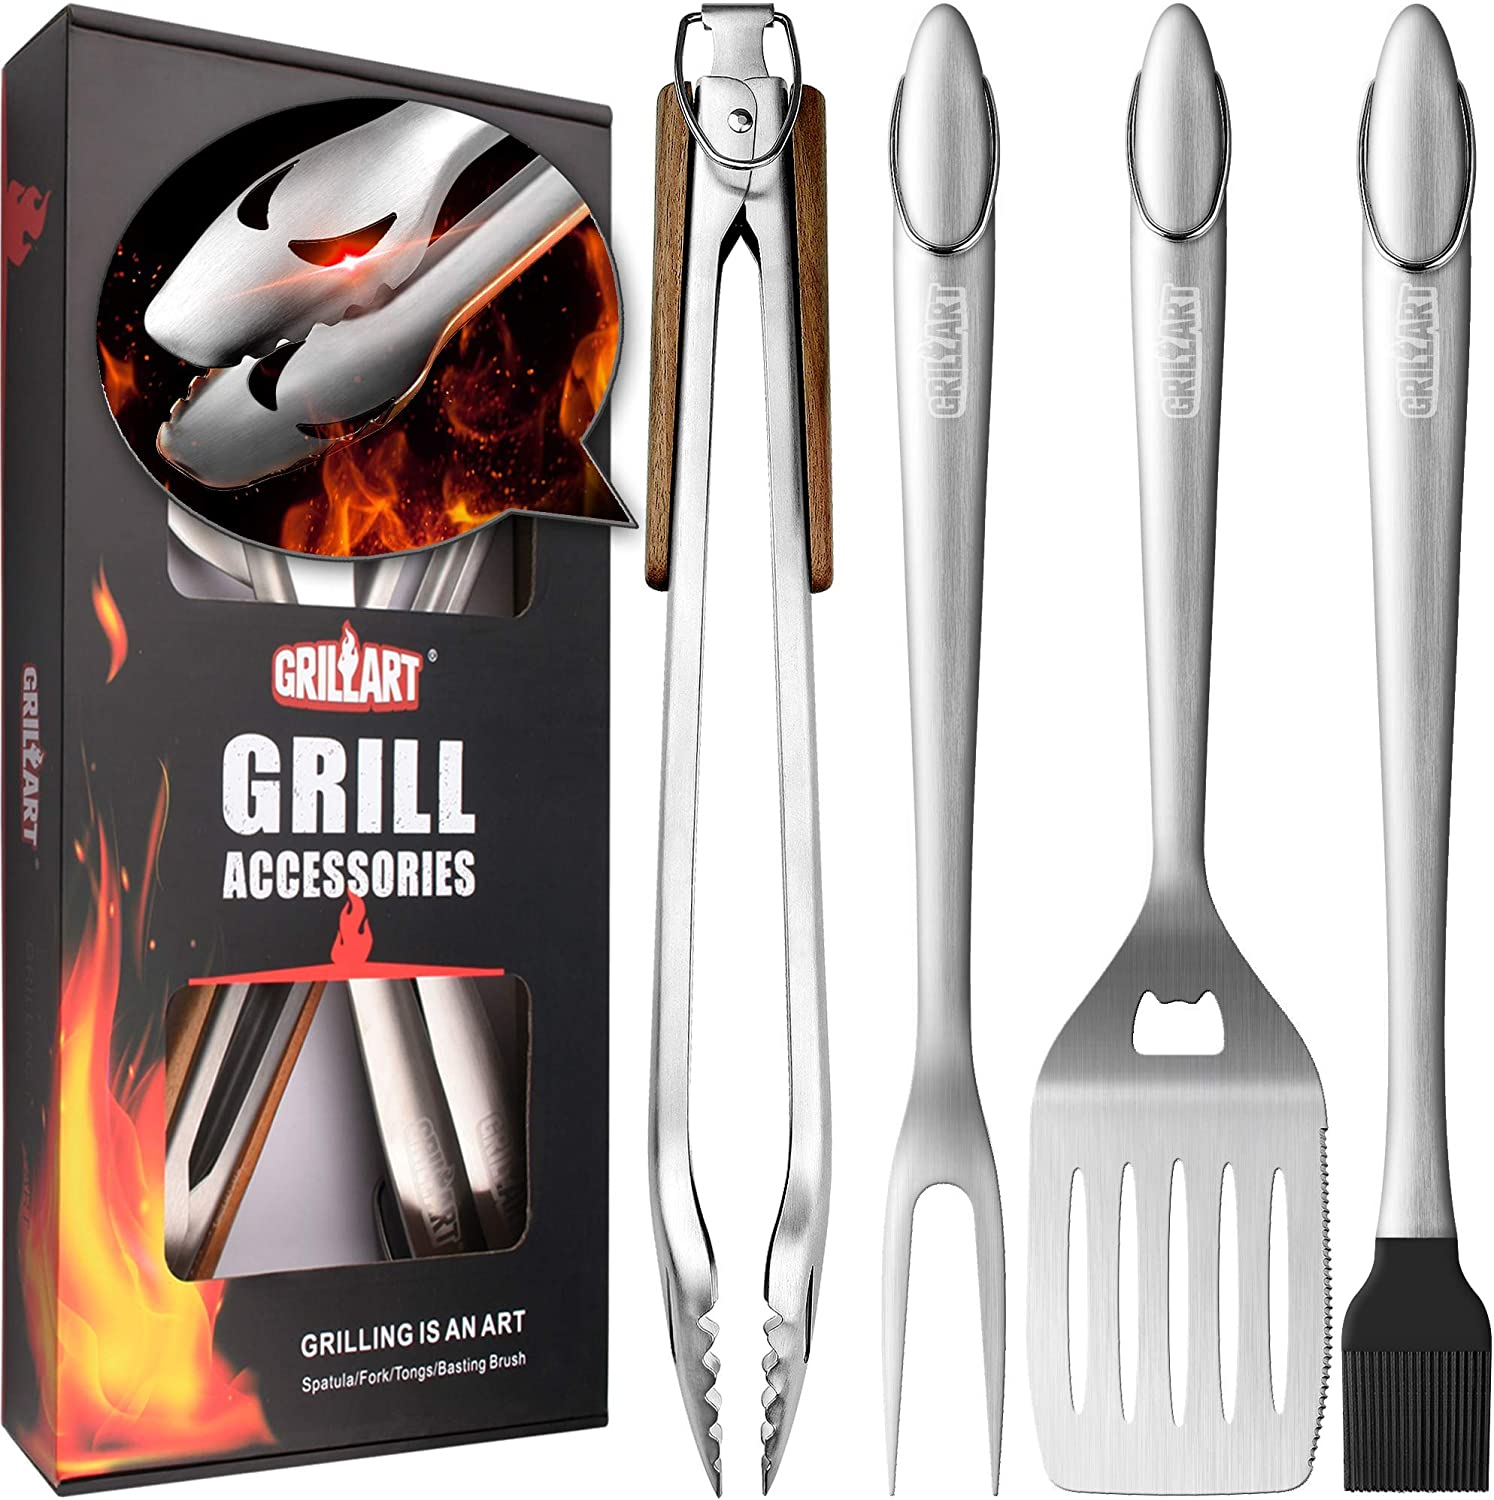 "GRILLART Heavy Duty BBQ Grill Tools Set. Snake-Eyes Design Stainless Steel Grill Utensils Kit - 18"" Locking Tongs, Spatula, Fork, Basting Brush. Best Barbecue Grilling Accessories, Gift for Men"